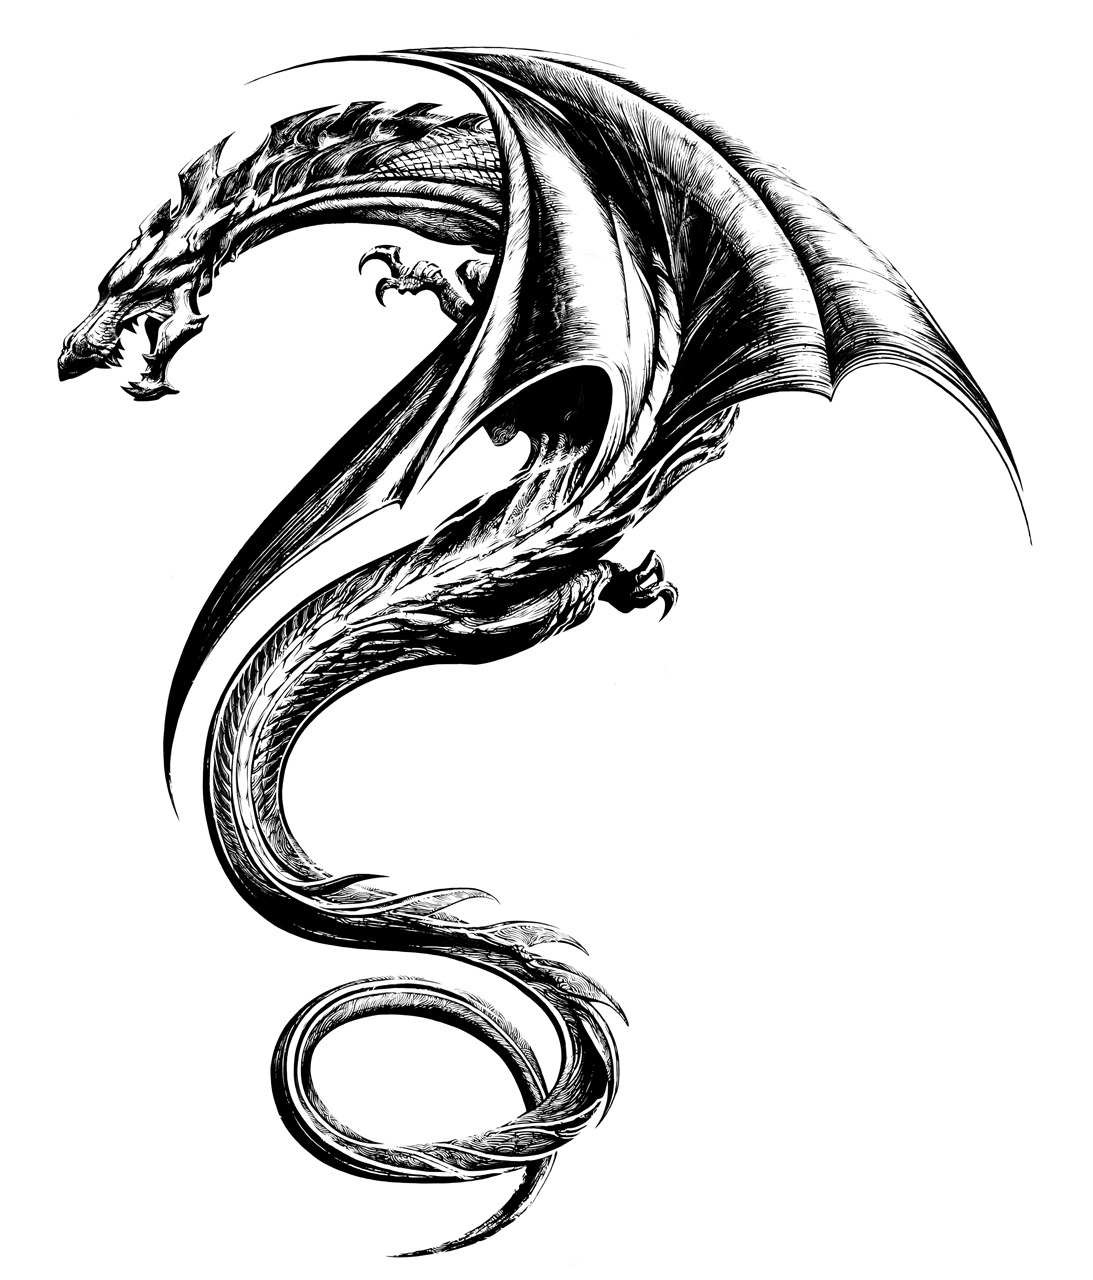 1093x1280 Awesome Dragon Tattoo Designs For Men